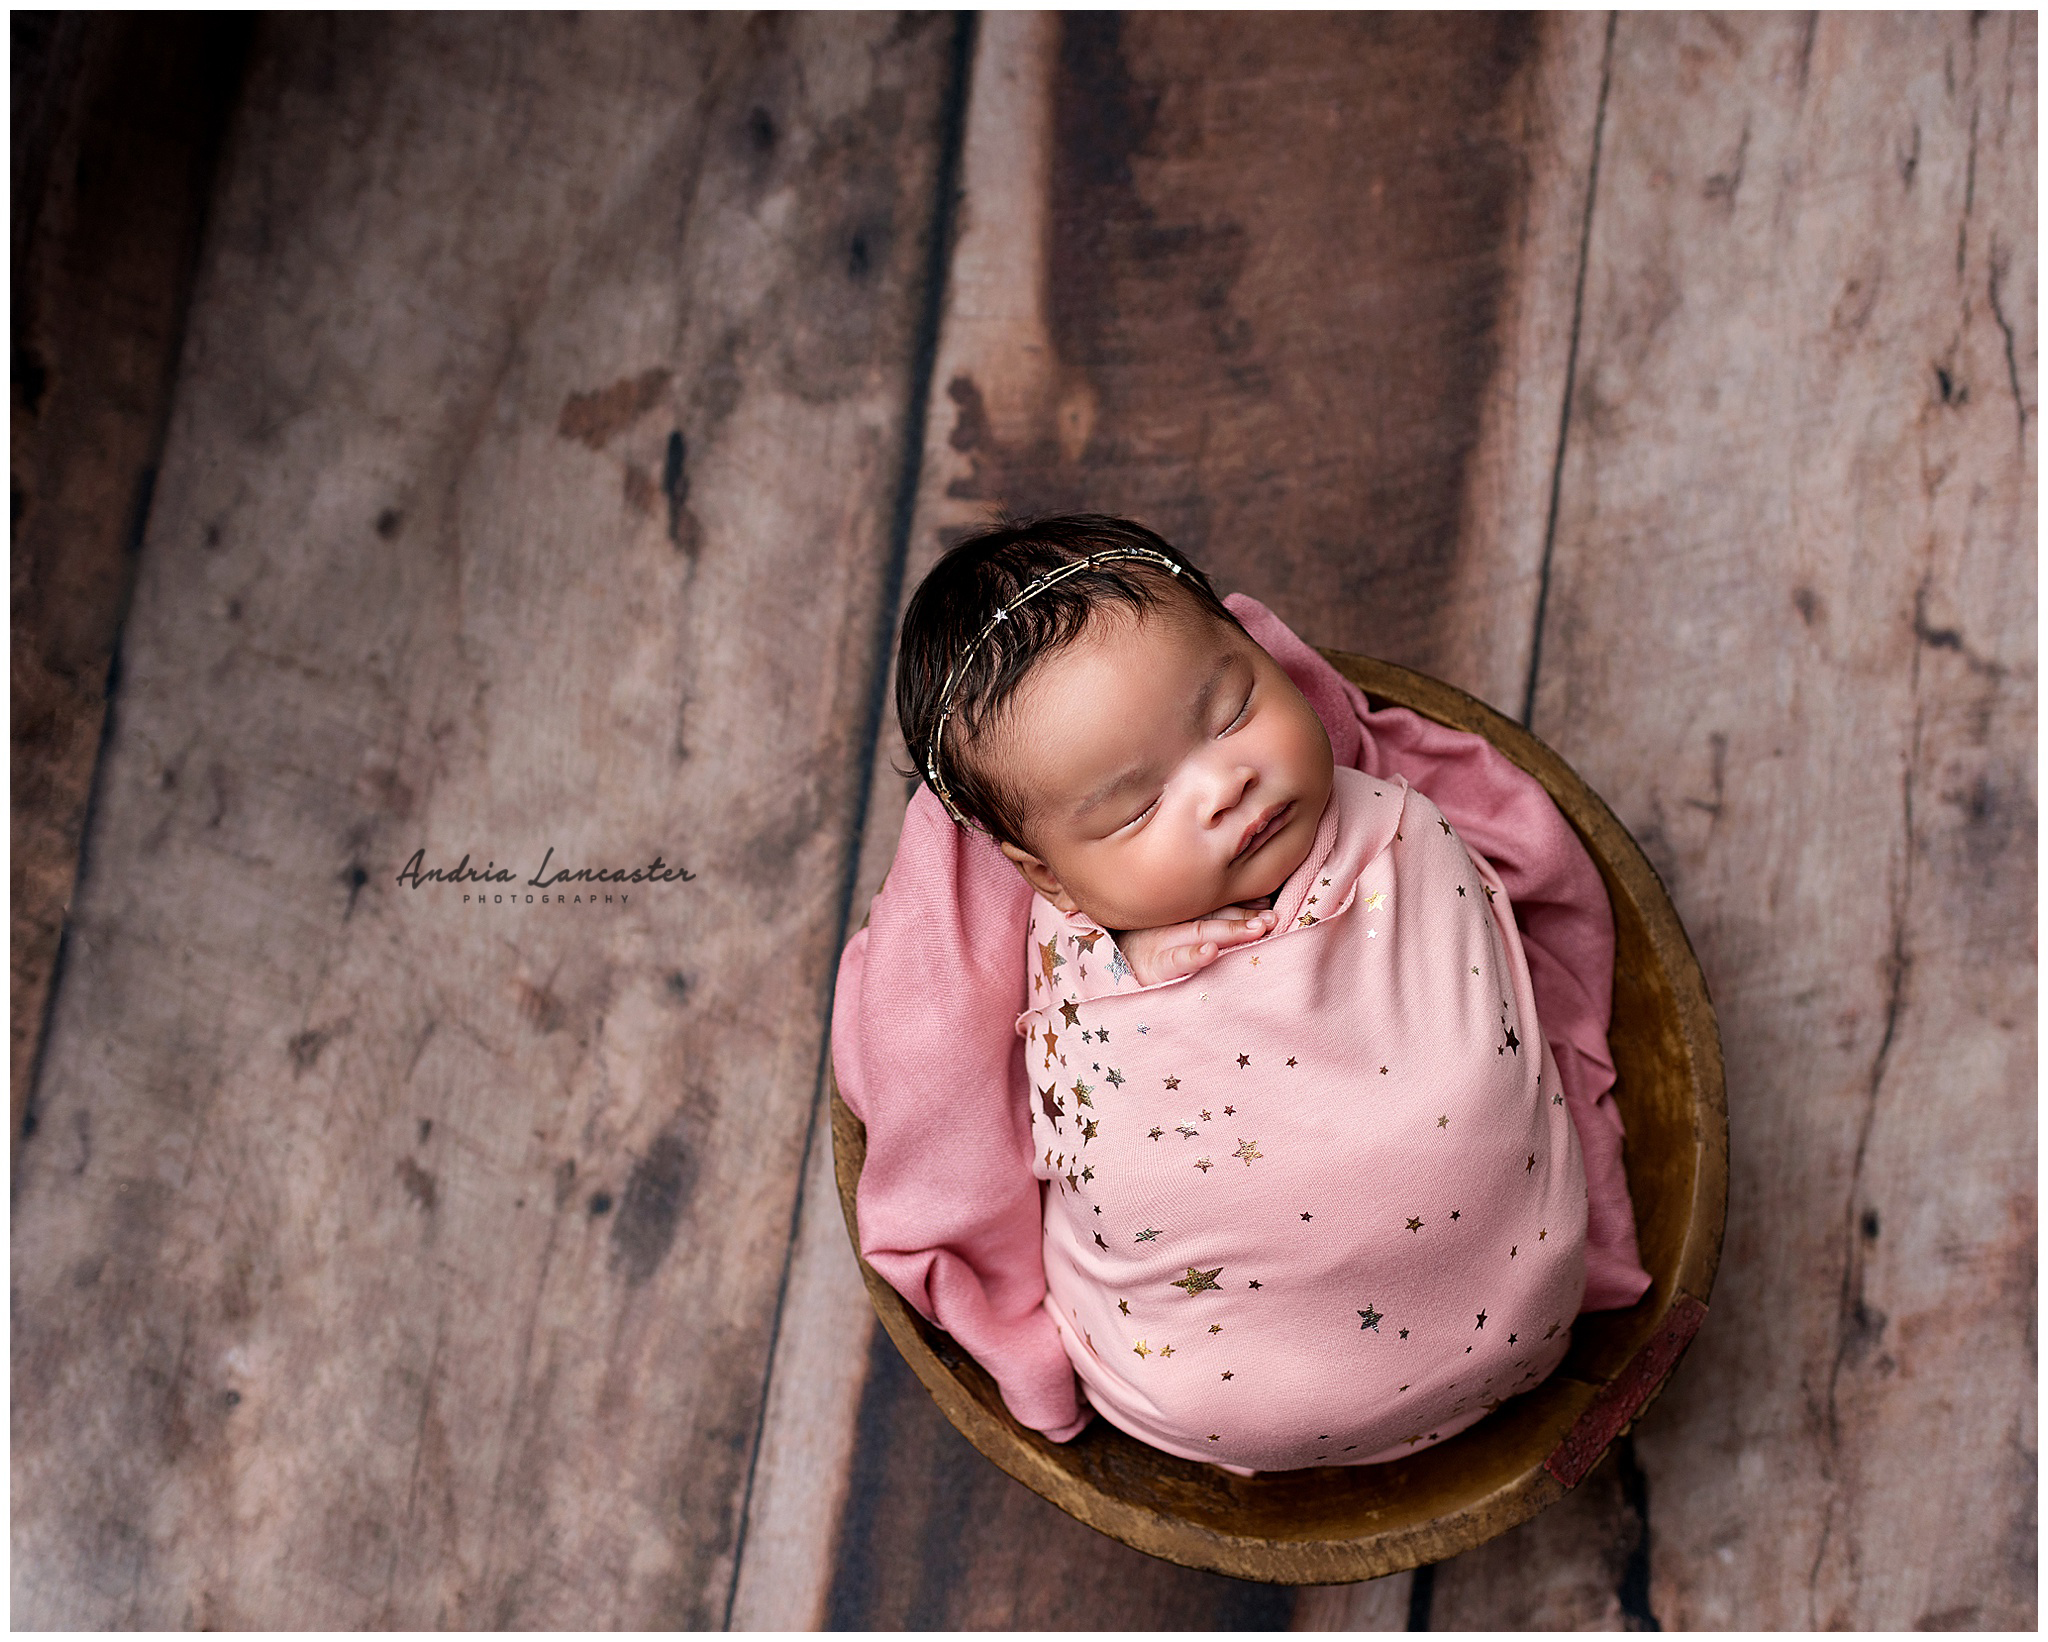 Newborn wrapped in pink with star headband in a bowl